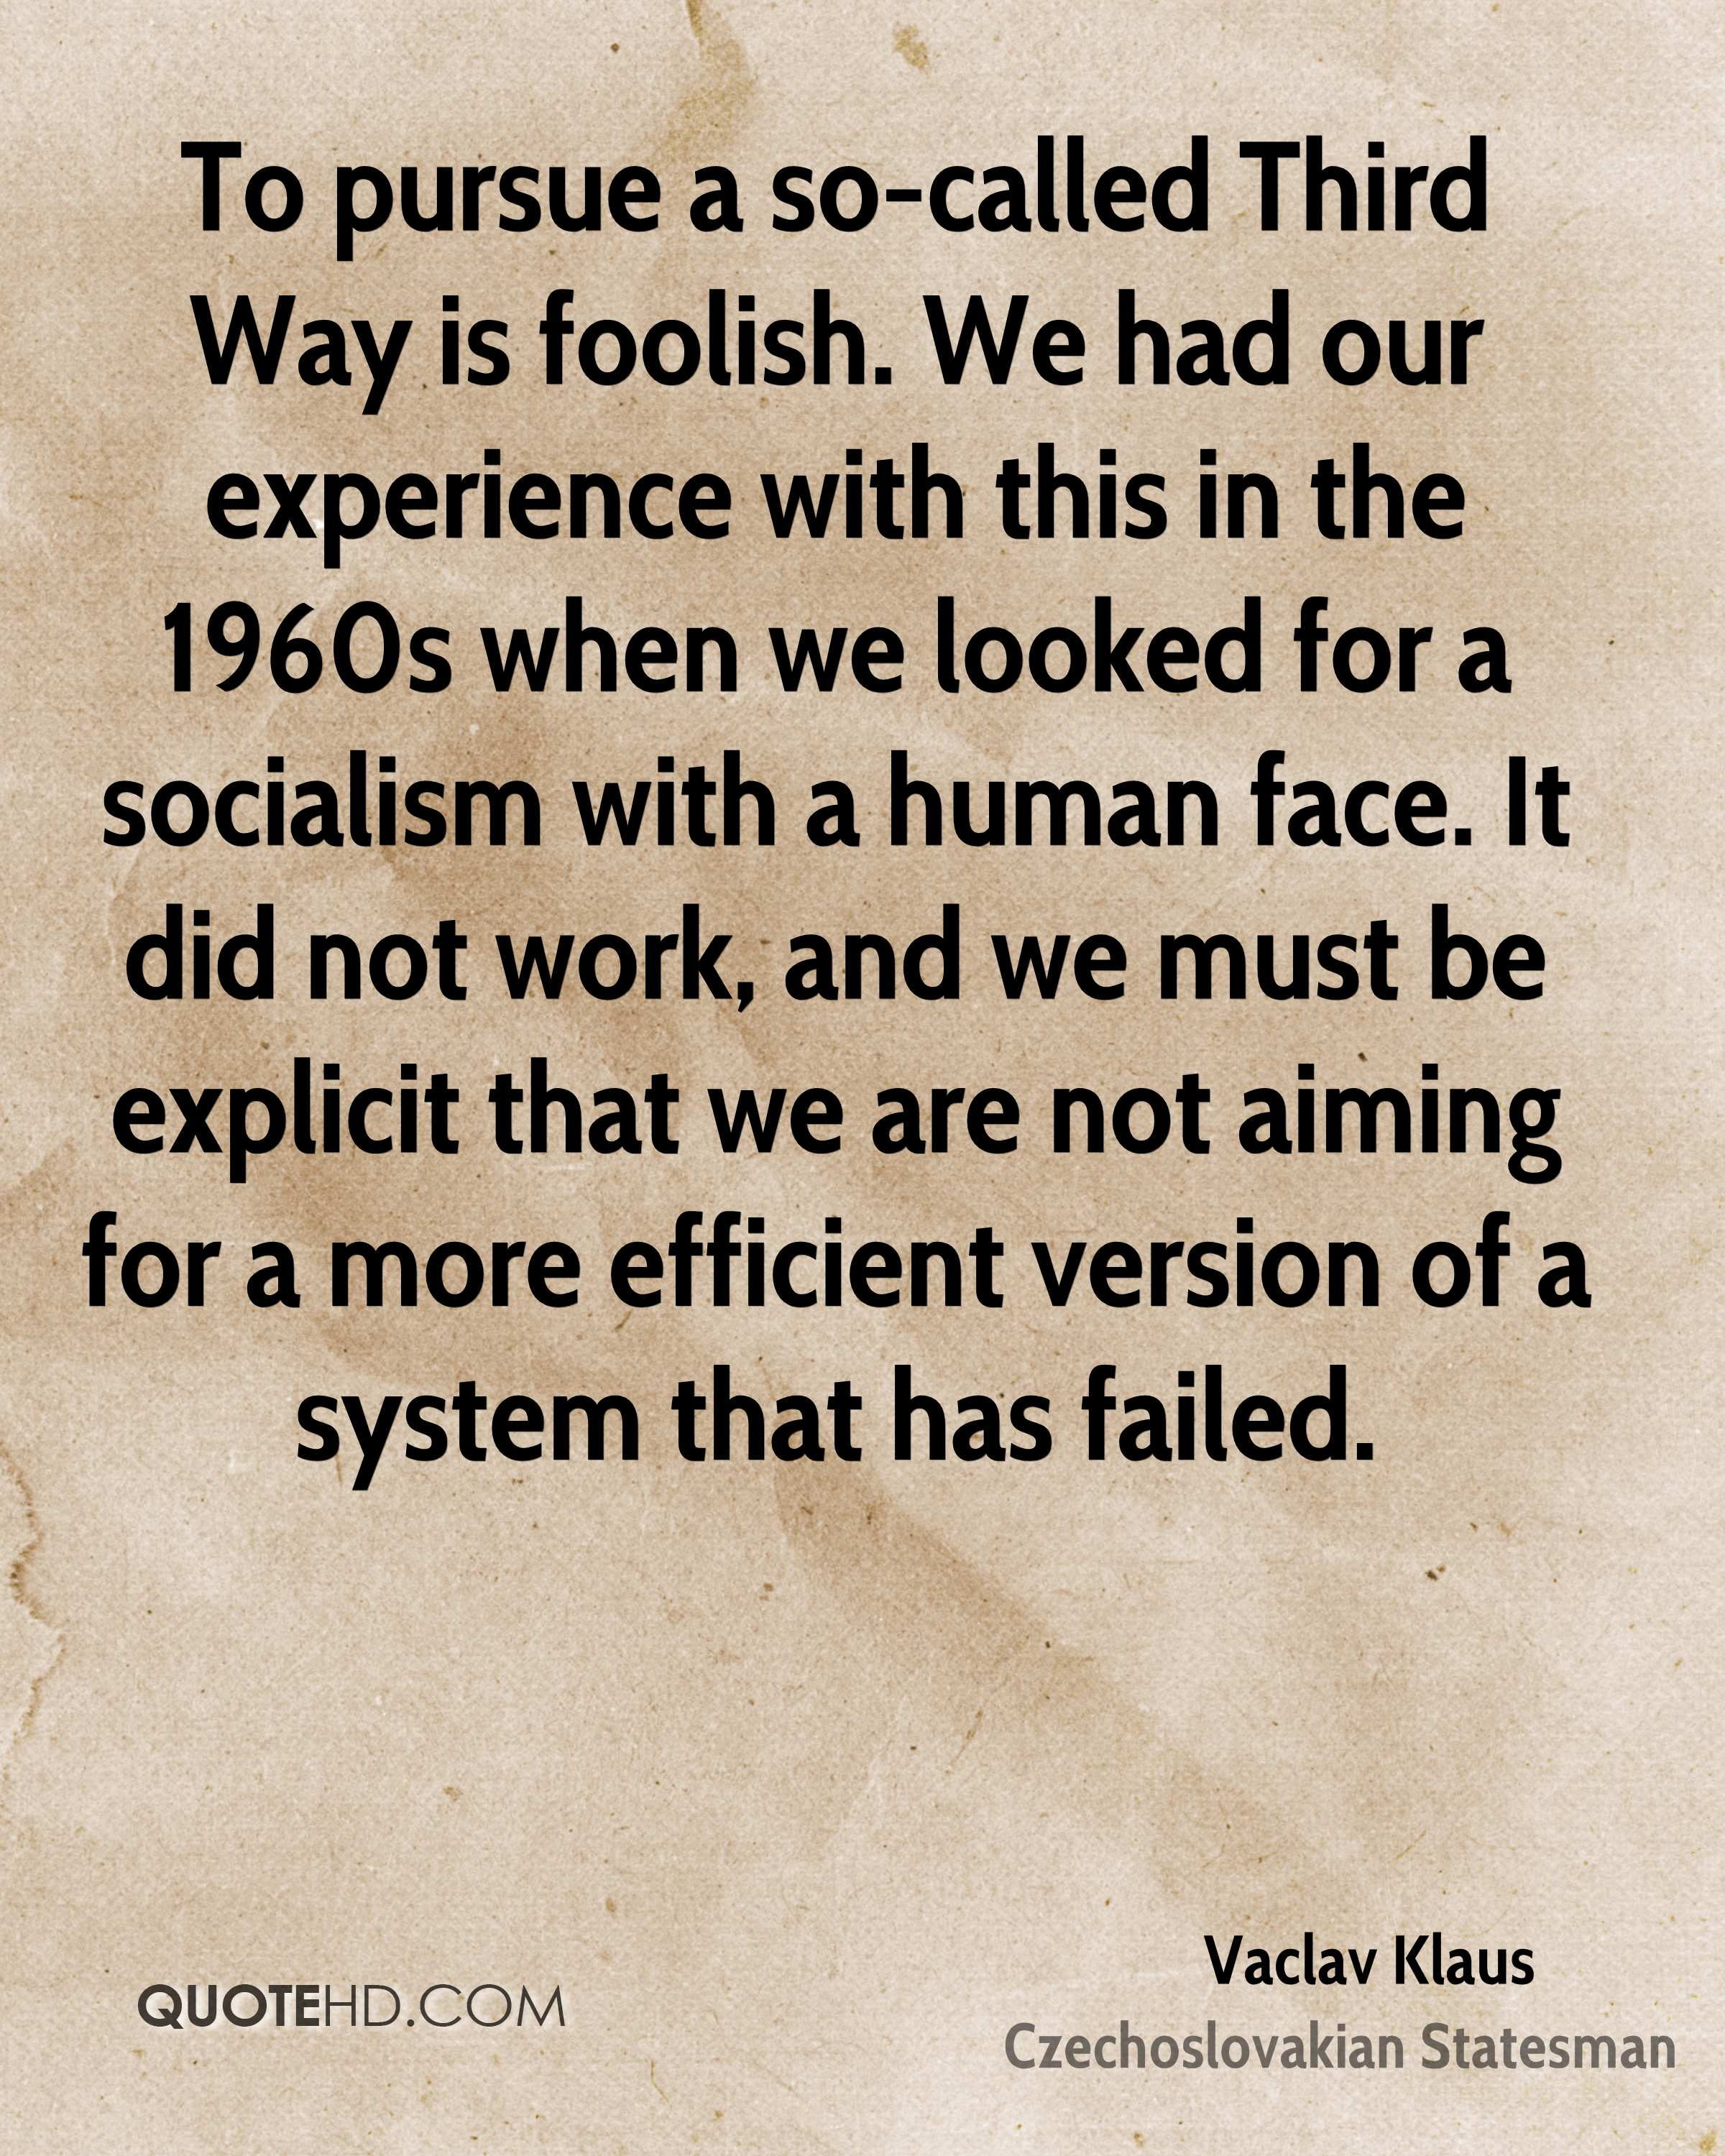 To pursue a so-called Third Way is foolish. We had our experience with this in the 1960s when we looked for a socialism with a human face. It did not work, and we must be explicit that we are not aiming for a more efficient version of a system that has failed.